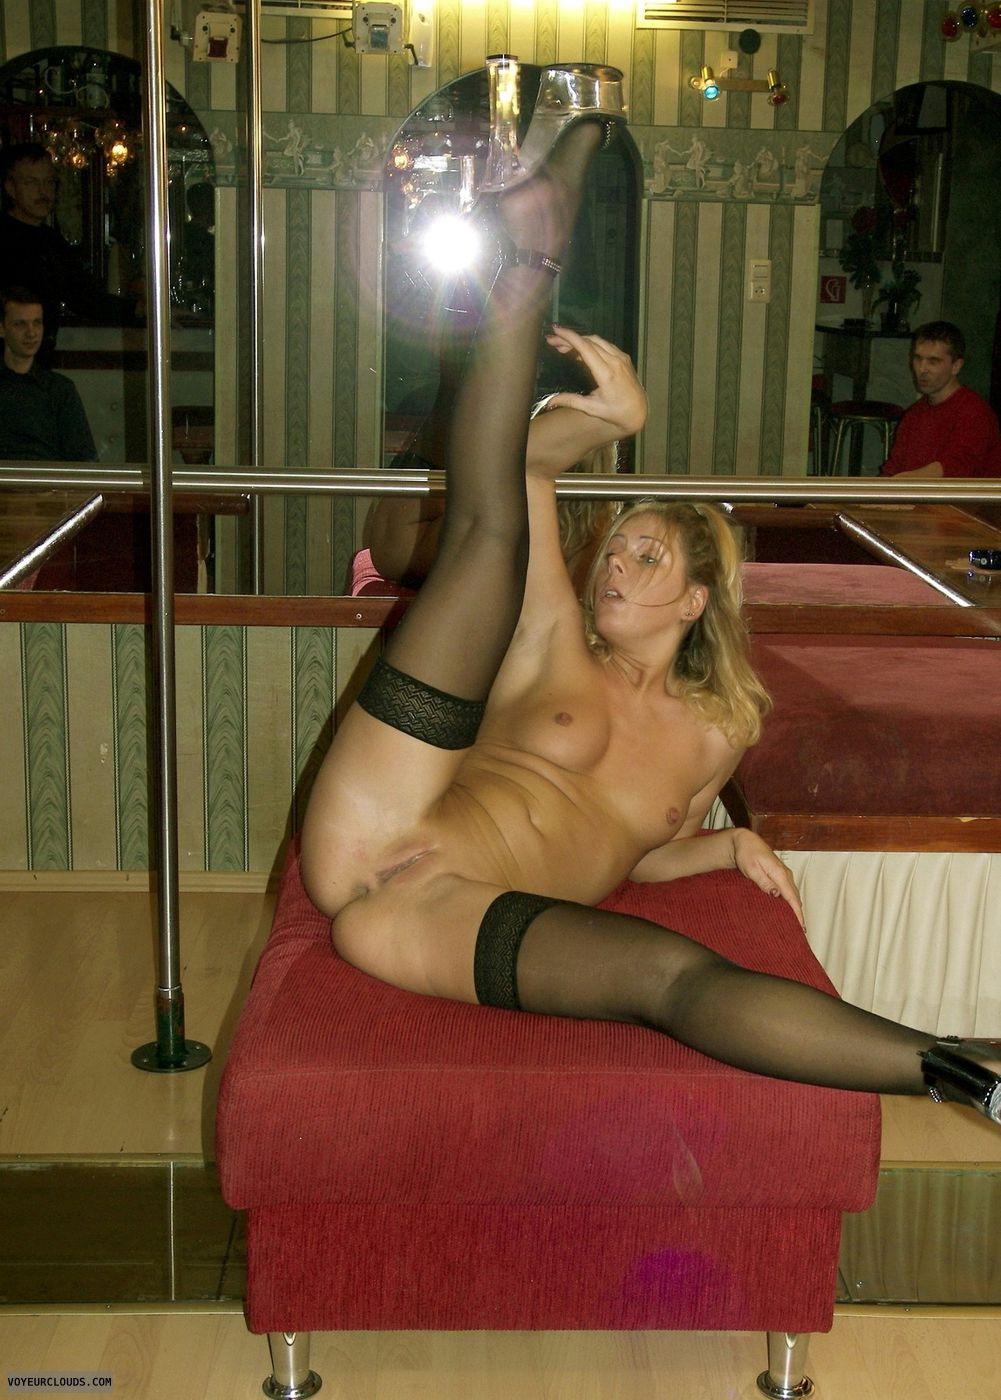 Real german hot wife gangbang in hotel room very hot part 2 - 3 3